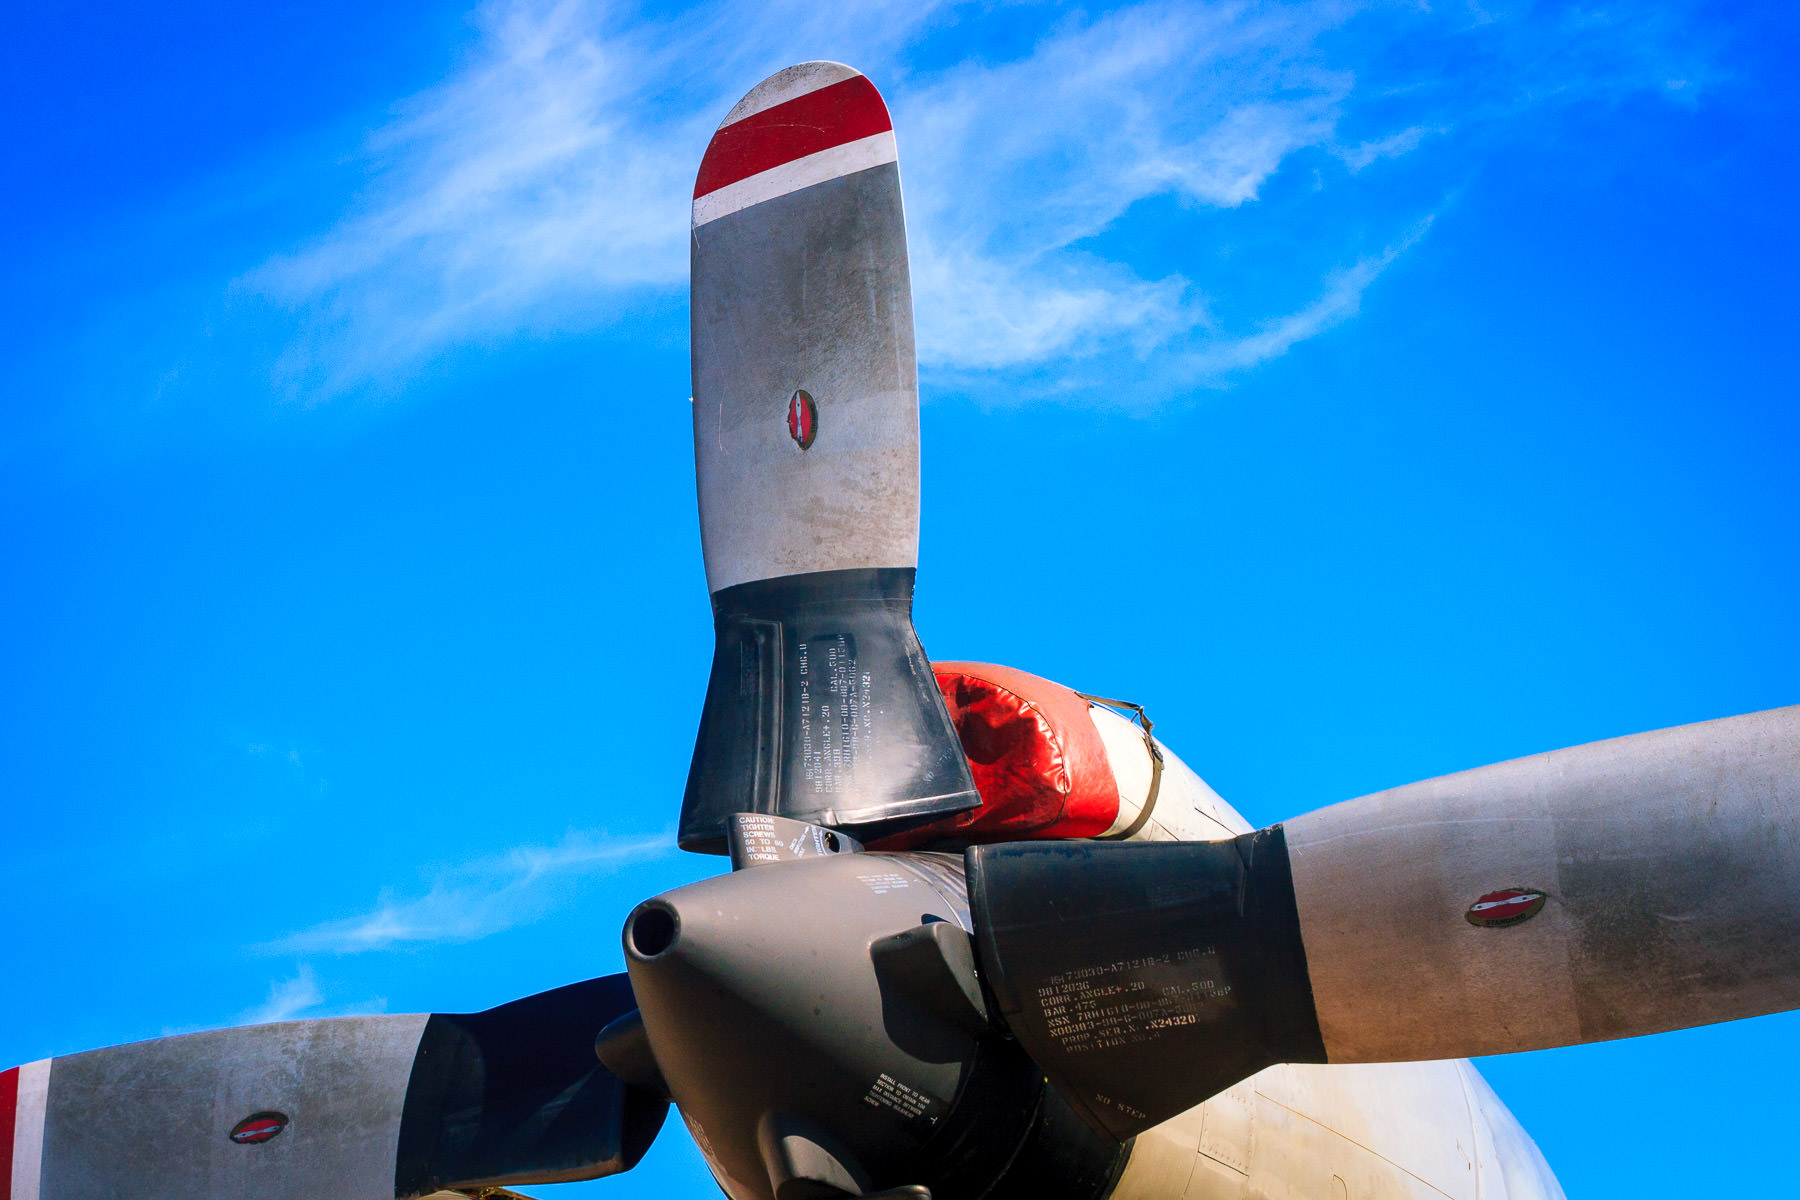 Detail of a turboprop engine on a U.S. Navy aircraft at the Fort Worth-Alliance Air Show.